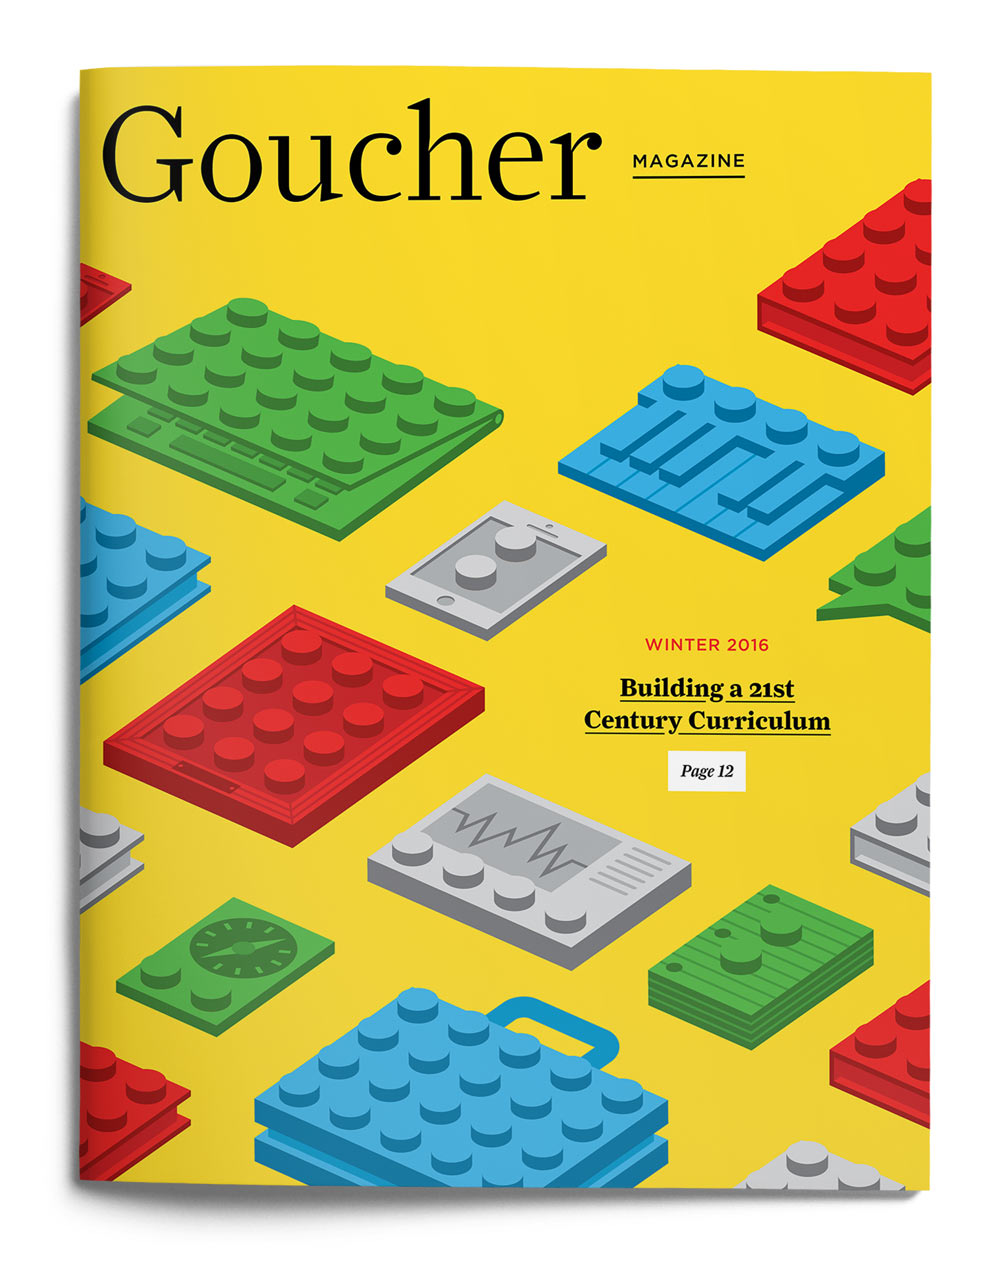 Goucher.Covers_1_c.jpg